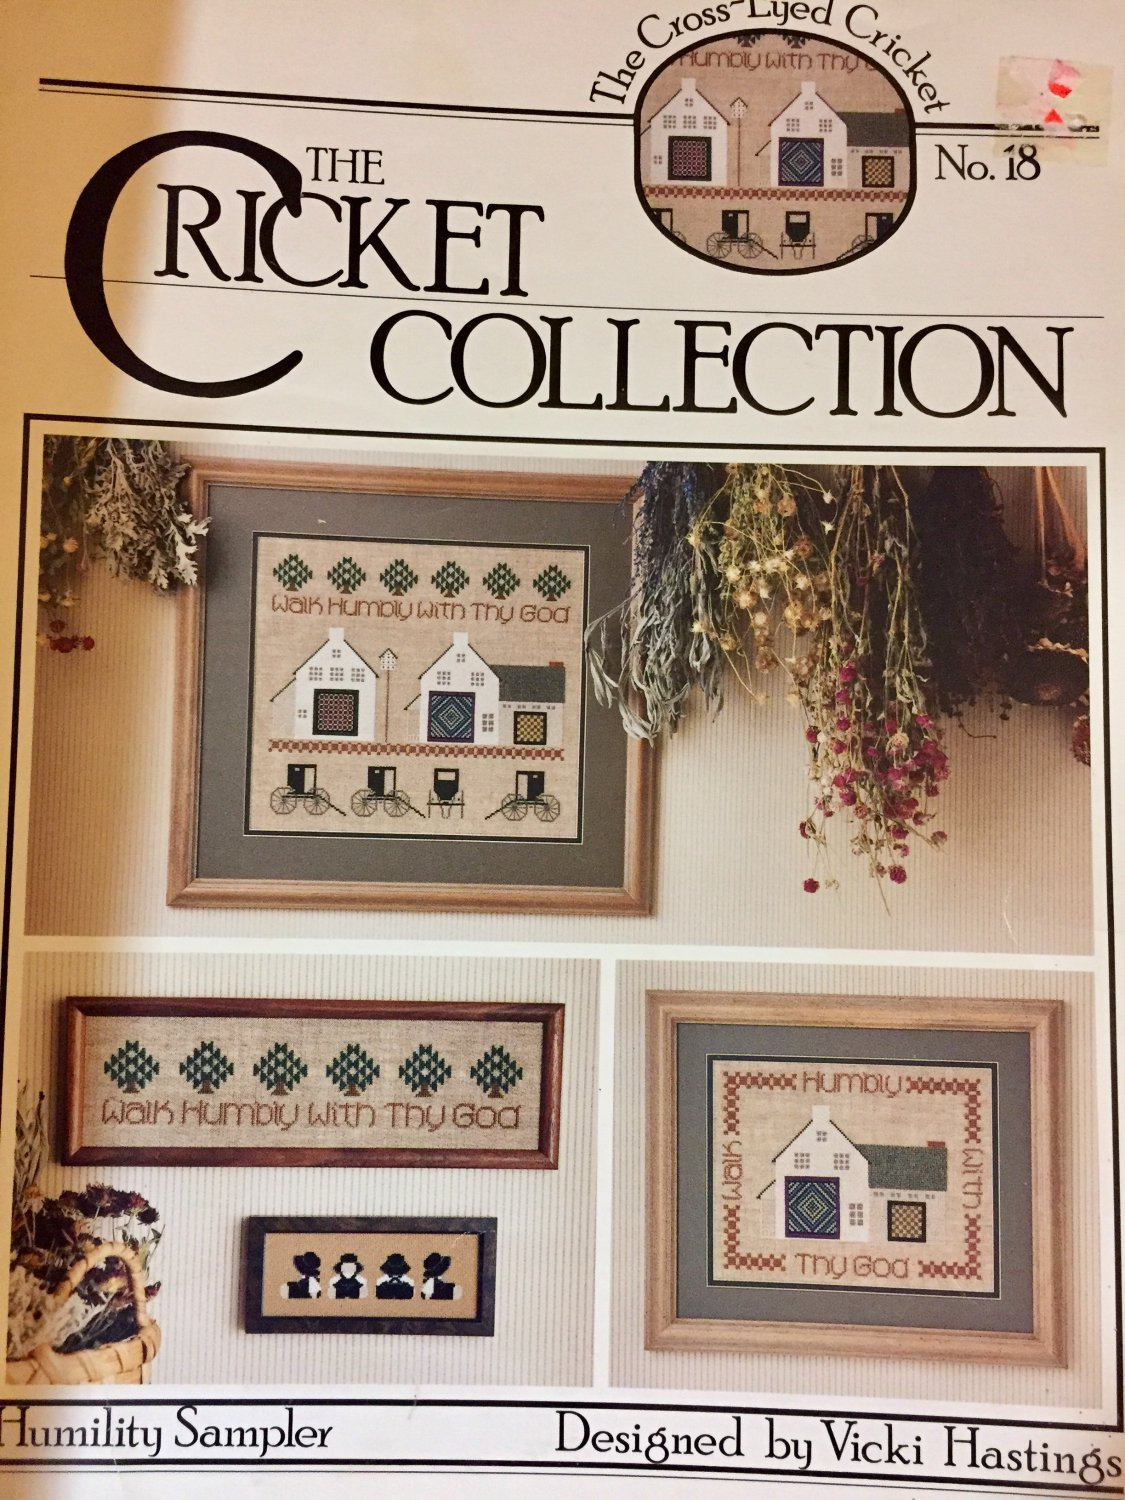 Cross Stitch Pattern The Cricket Collection No.18 Humility Sampler